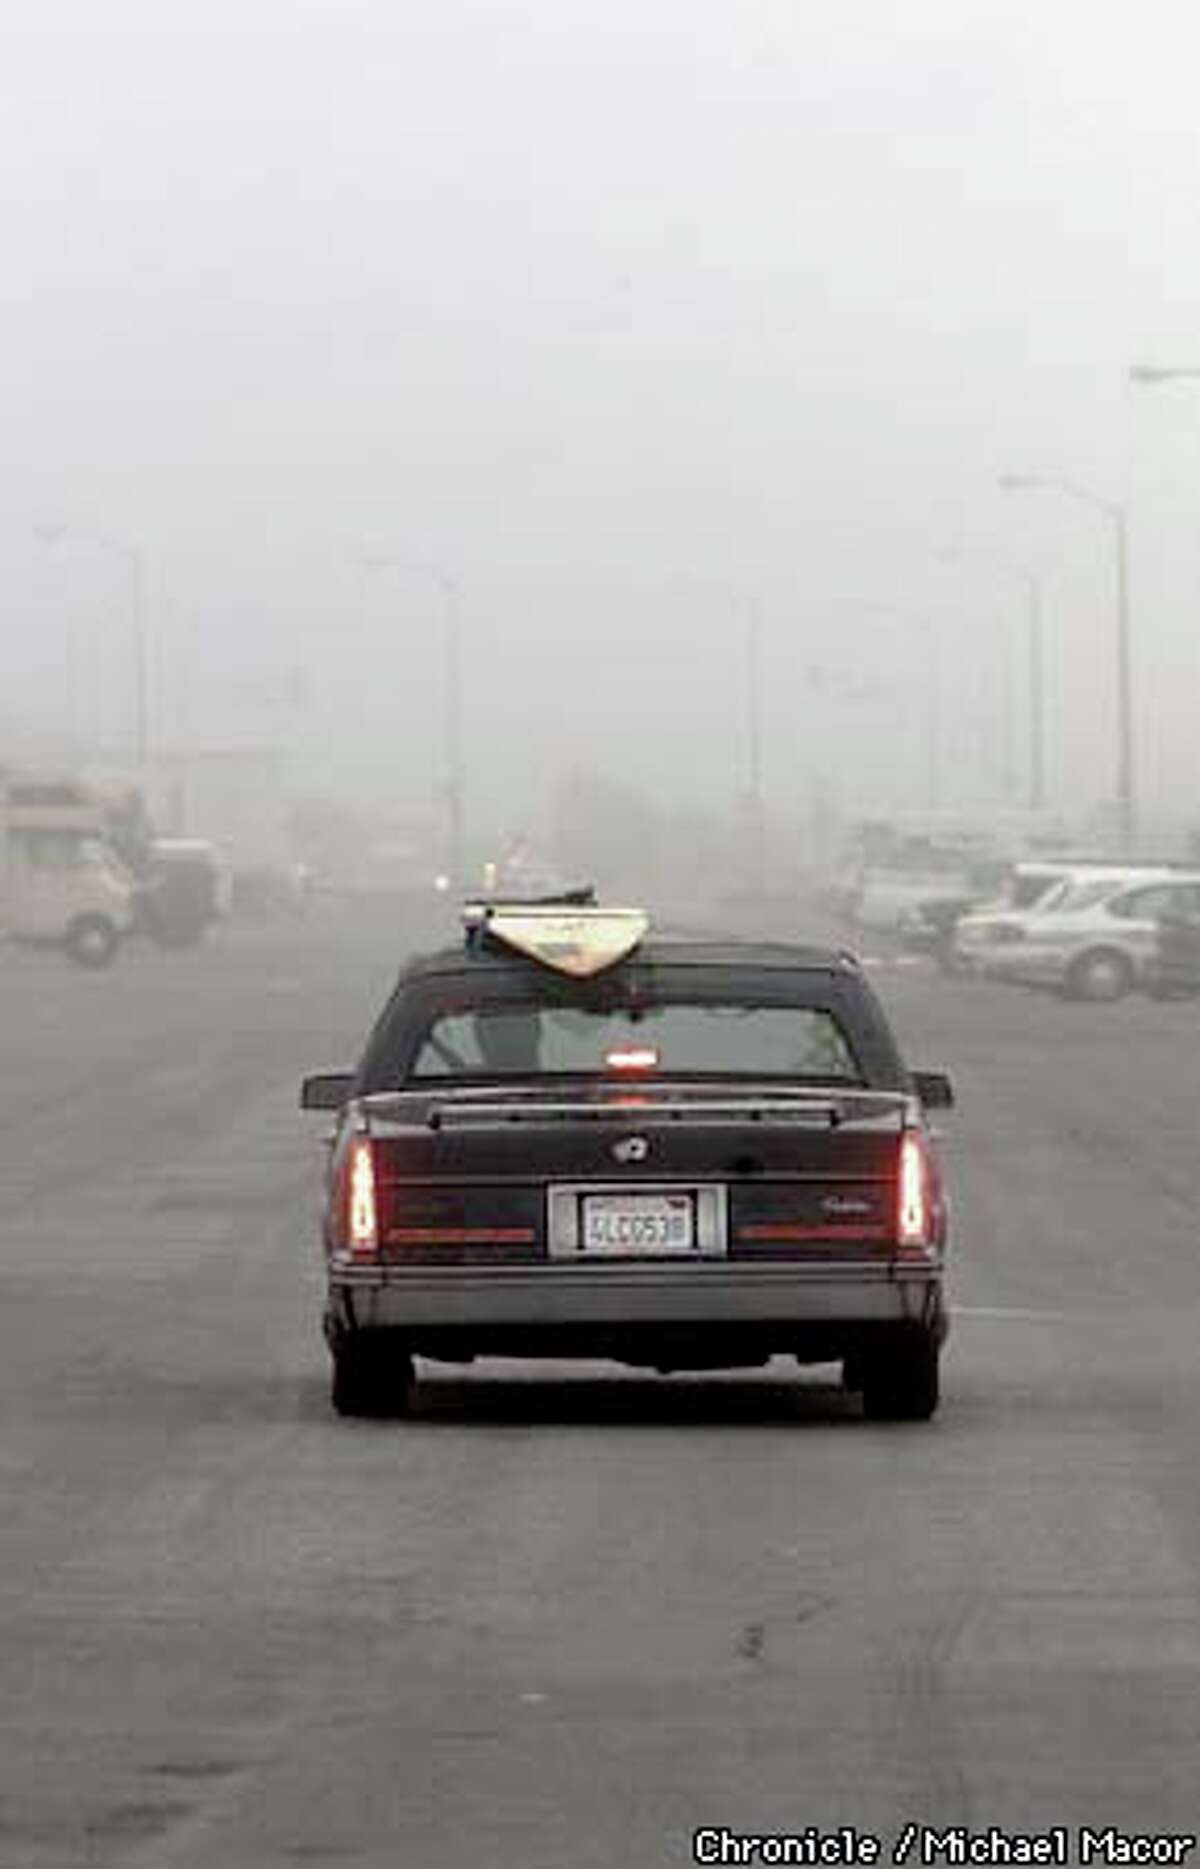 About 8 a.m., Orsi guides his 1987 Cadillac -- with surfboard strapped atop it -- out of the Ocean Beach parking lot as he heads off to work. Chronicle photo by Michael Macor